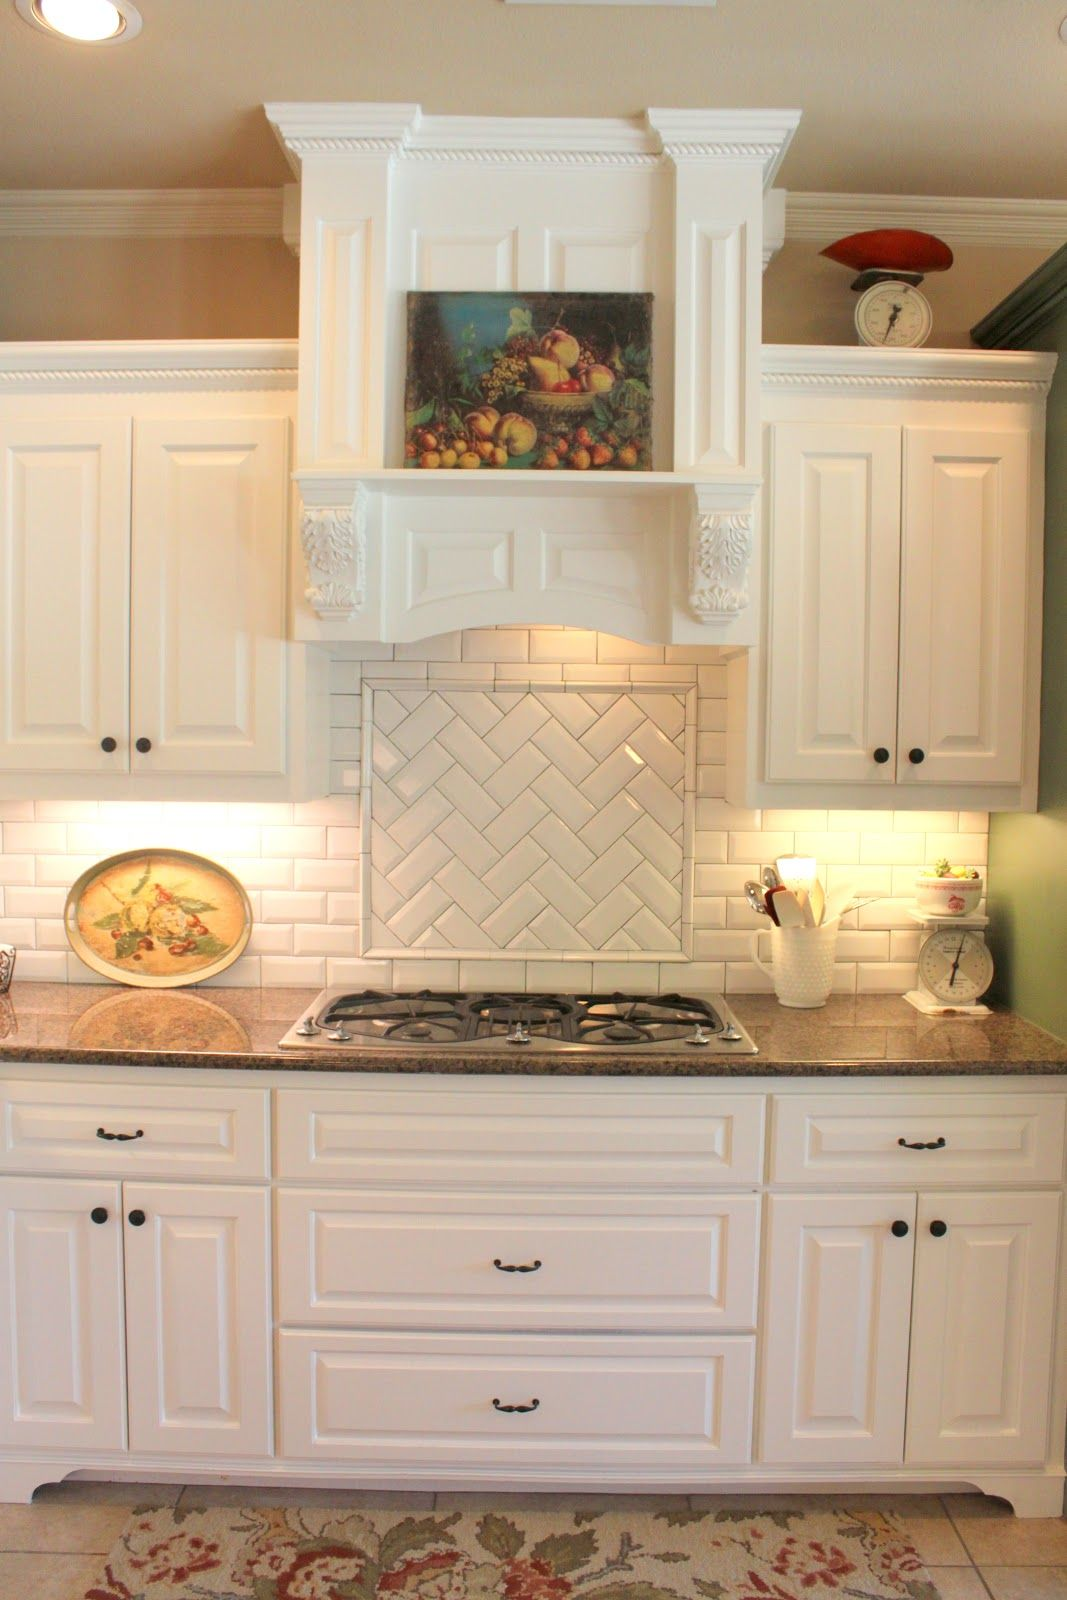 subway or morrocan tile backsplash with white cabinets |  tile